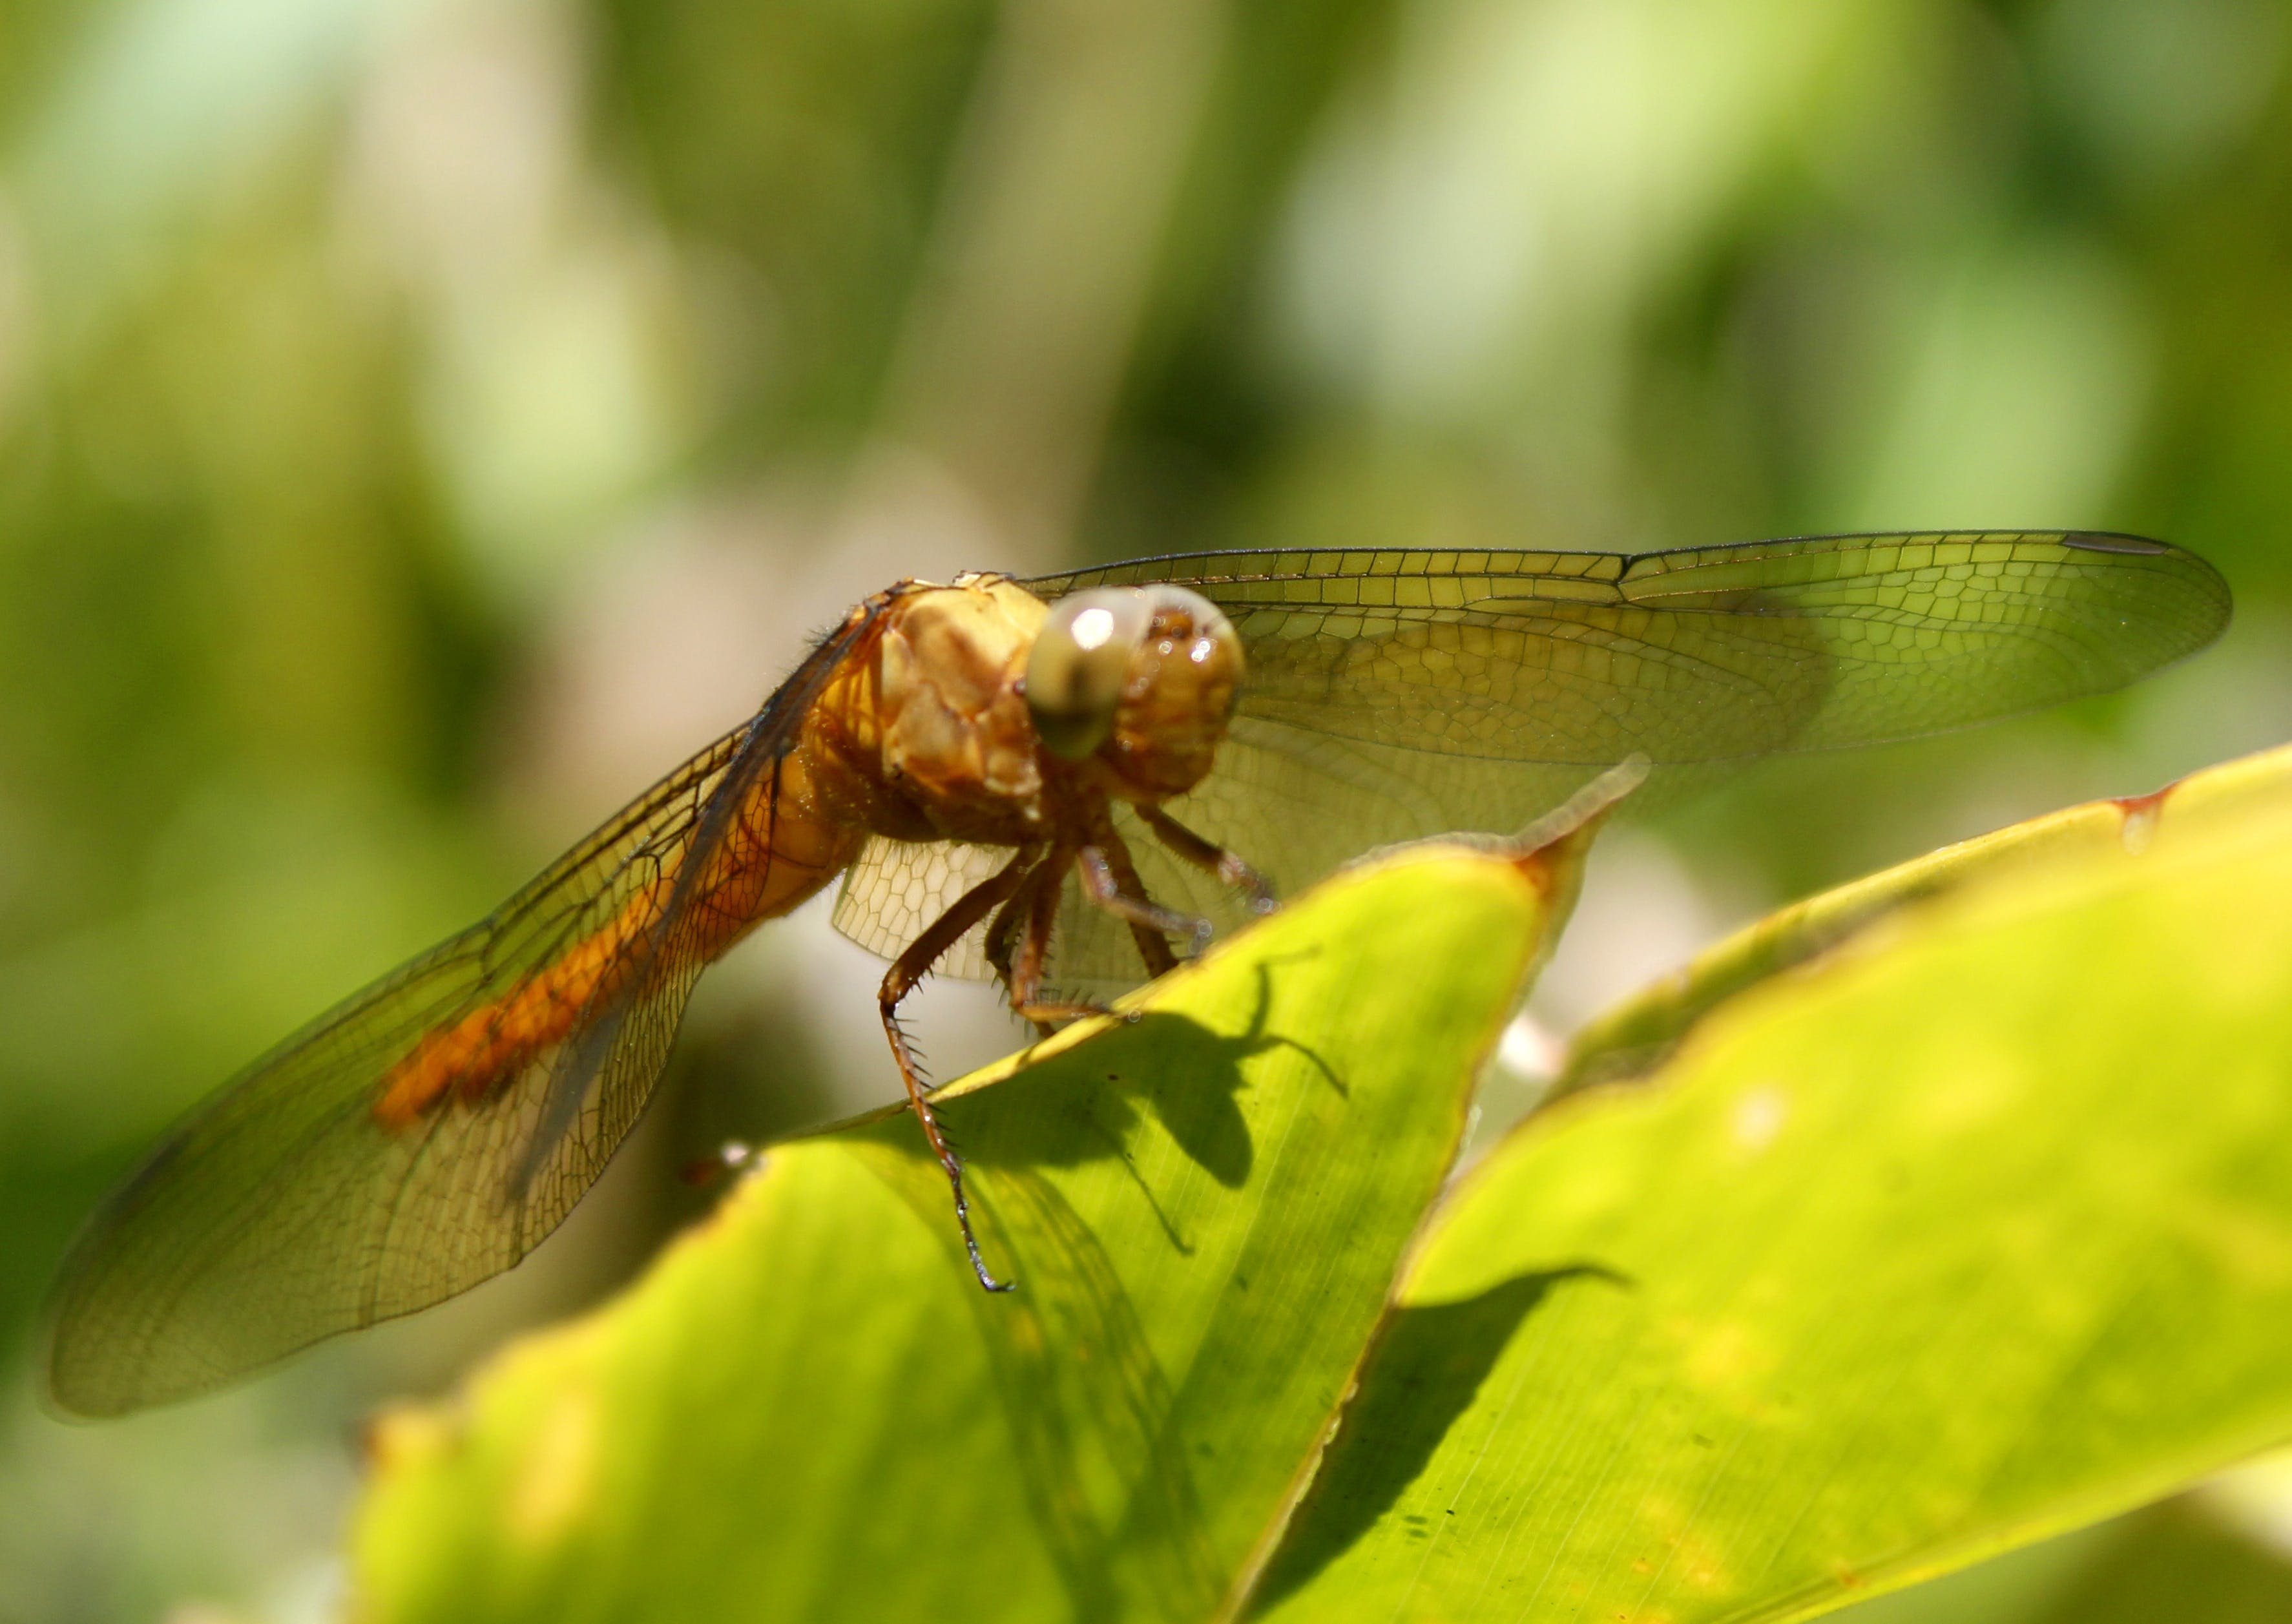 Free stock photo of dragonflies, dragonfly, dragonflywing, macro